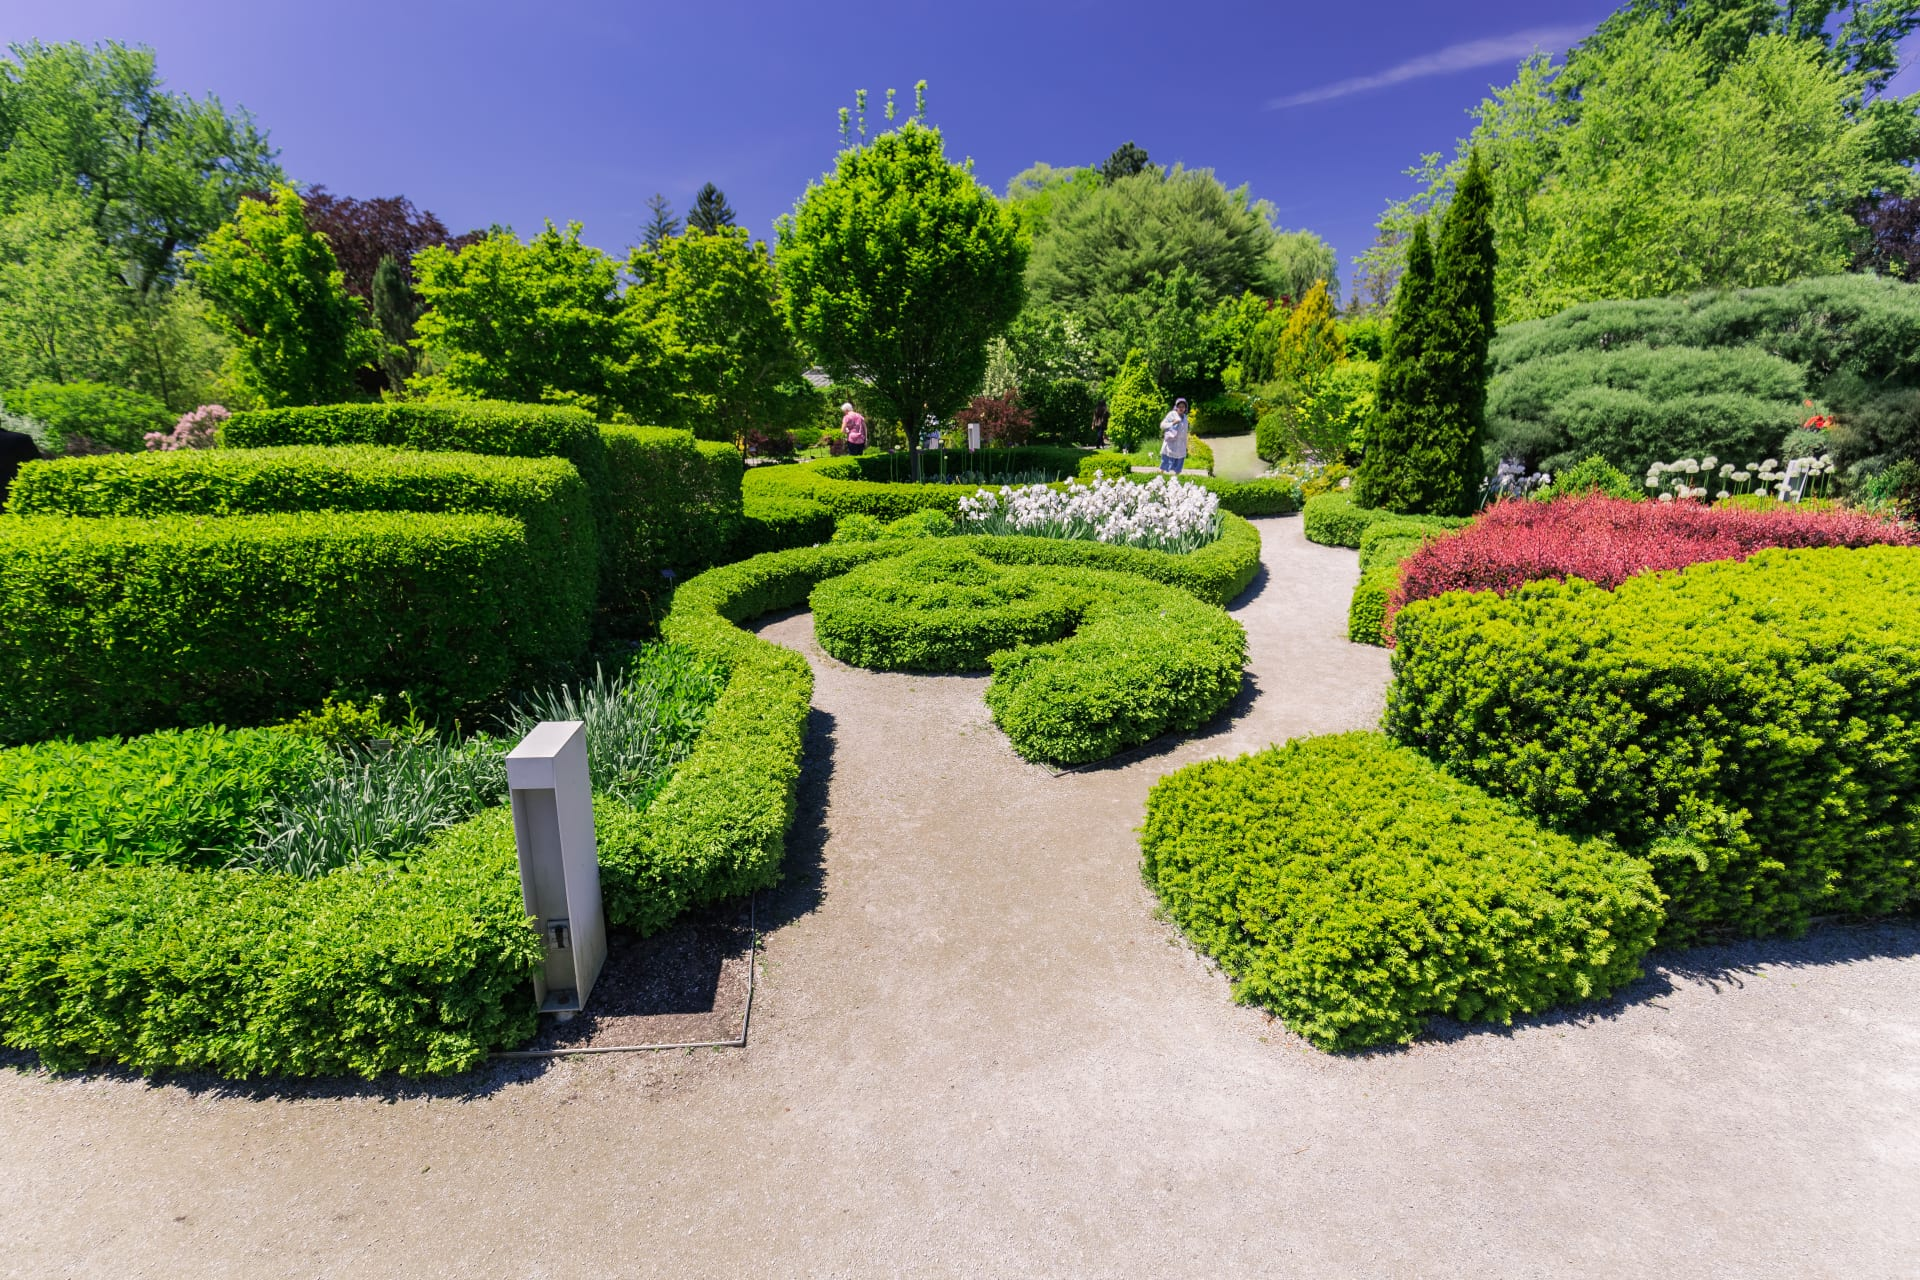 Greater Toronto Area - Hedge Design and Plants at the Toronto Botanical Garden